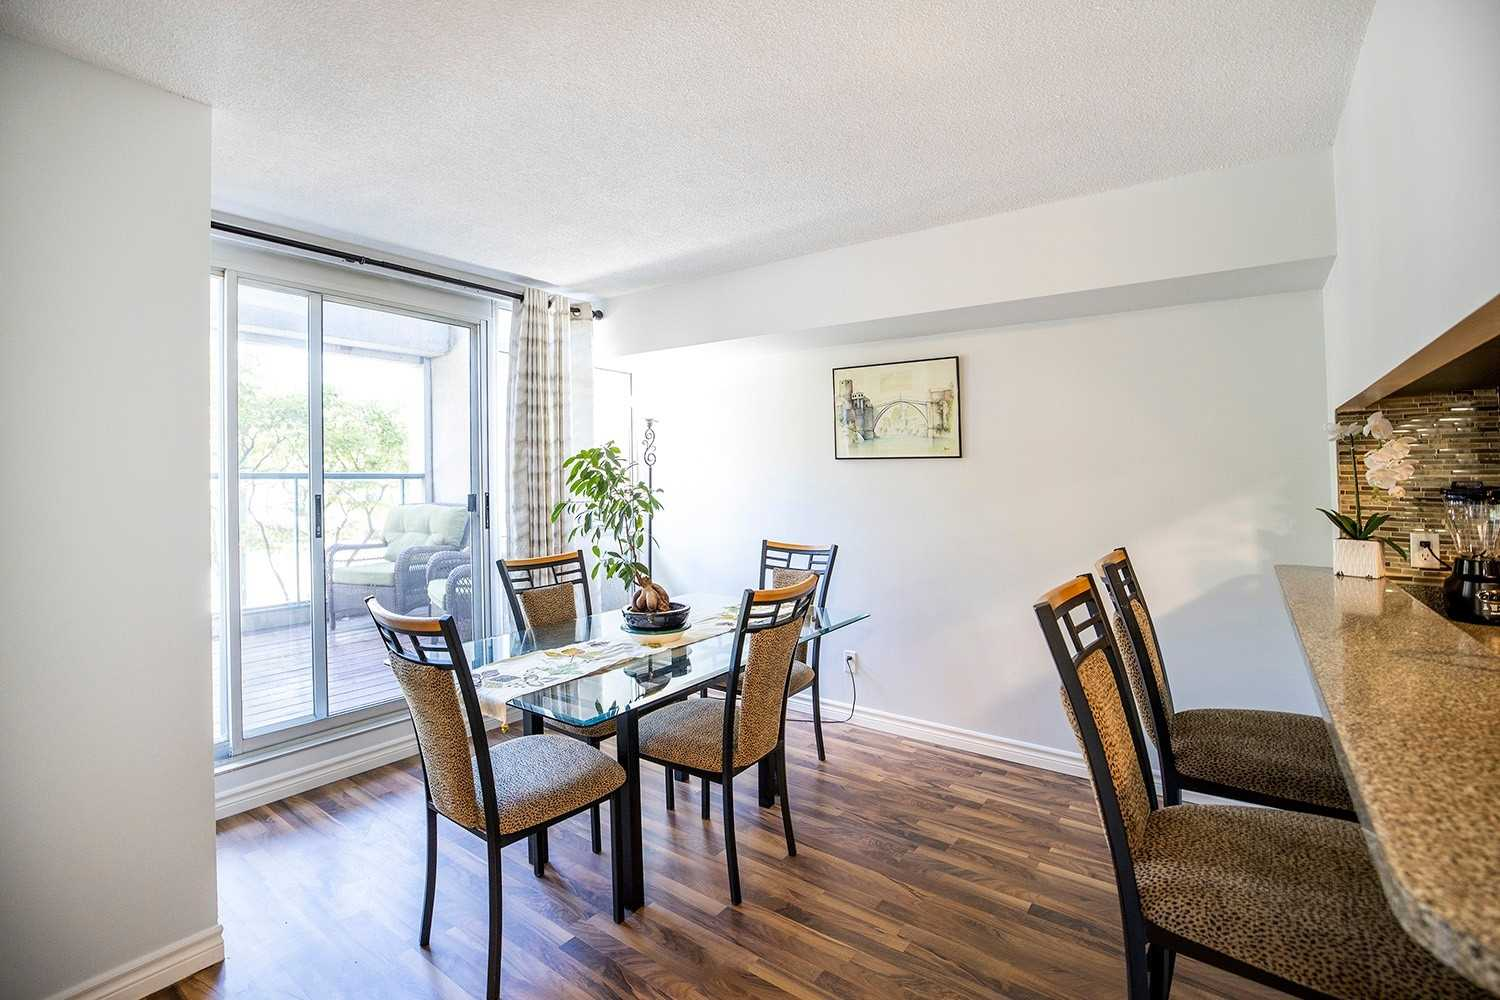 Image 19 of 20 showing inside of 2 Bedroom Condo Apt 2-Storey for Sale at 25 Cumberland Lane Unit# 112, Ajax L1S7K1